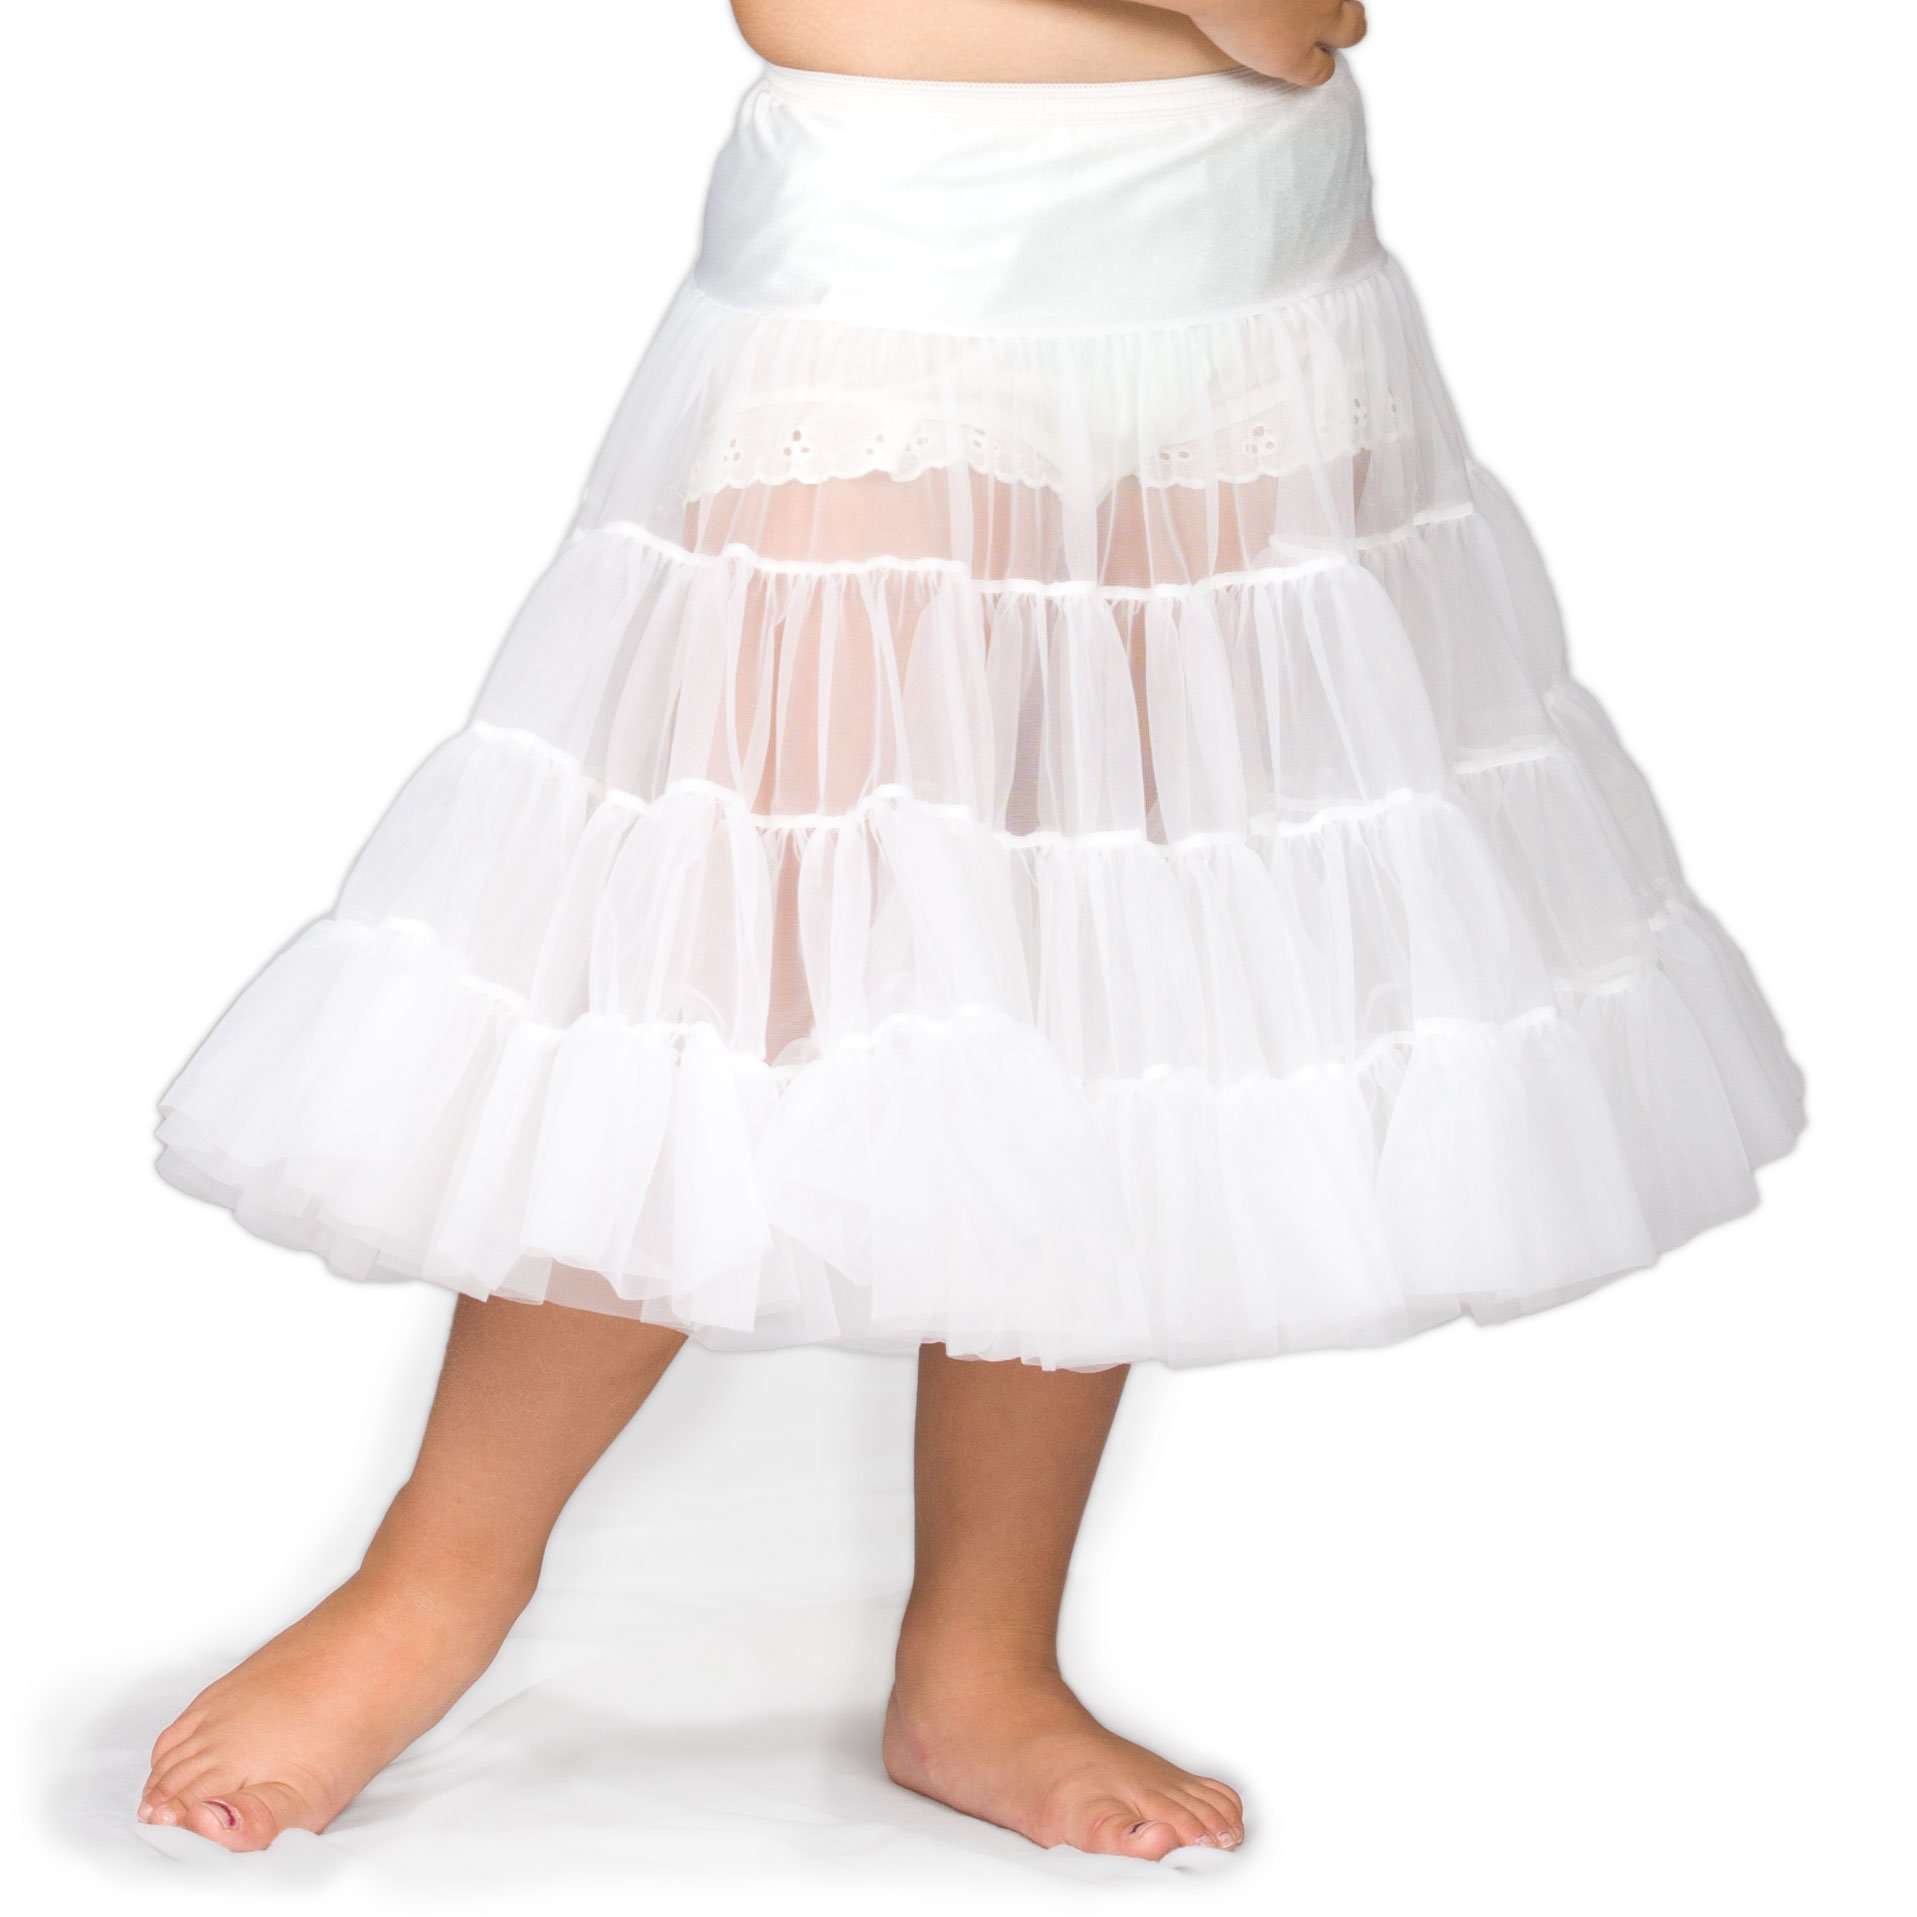 I.C. Collections Little Girls White Bouffant Half Slip Petticoat Tea Length, 2T